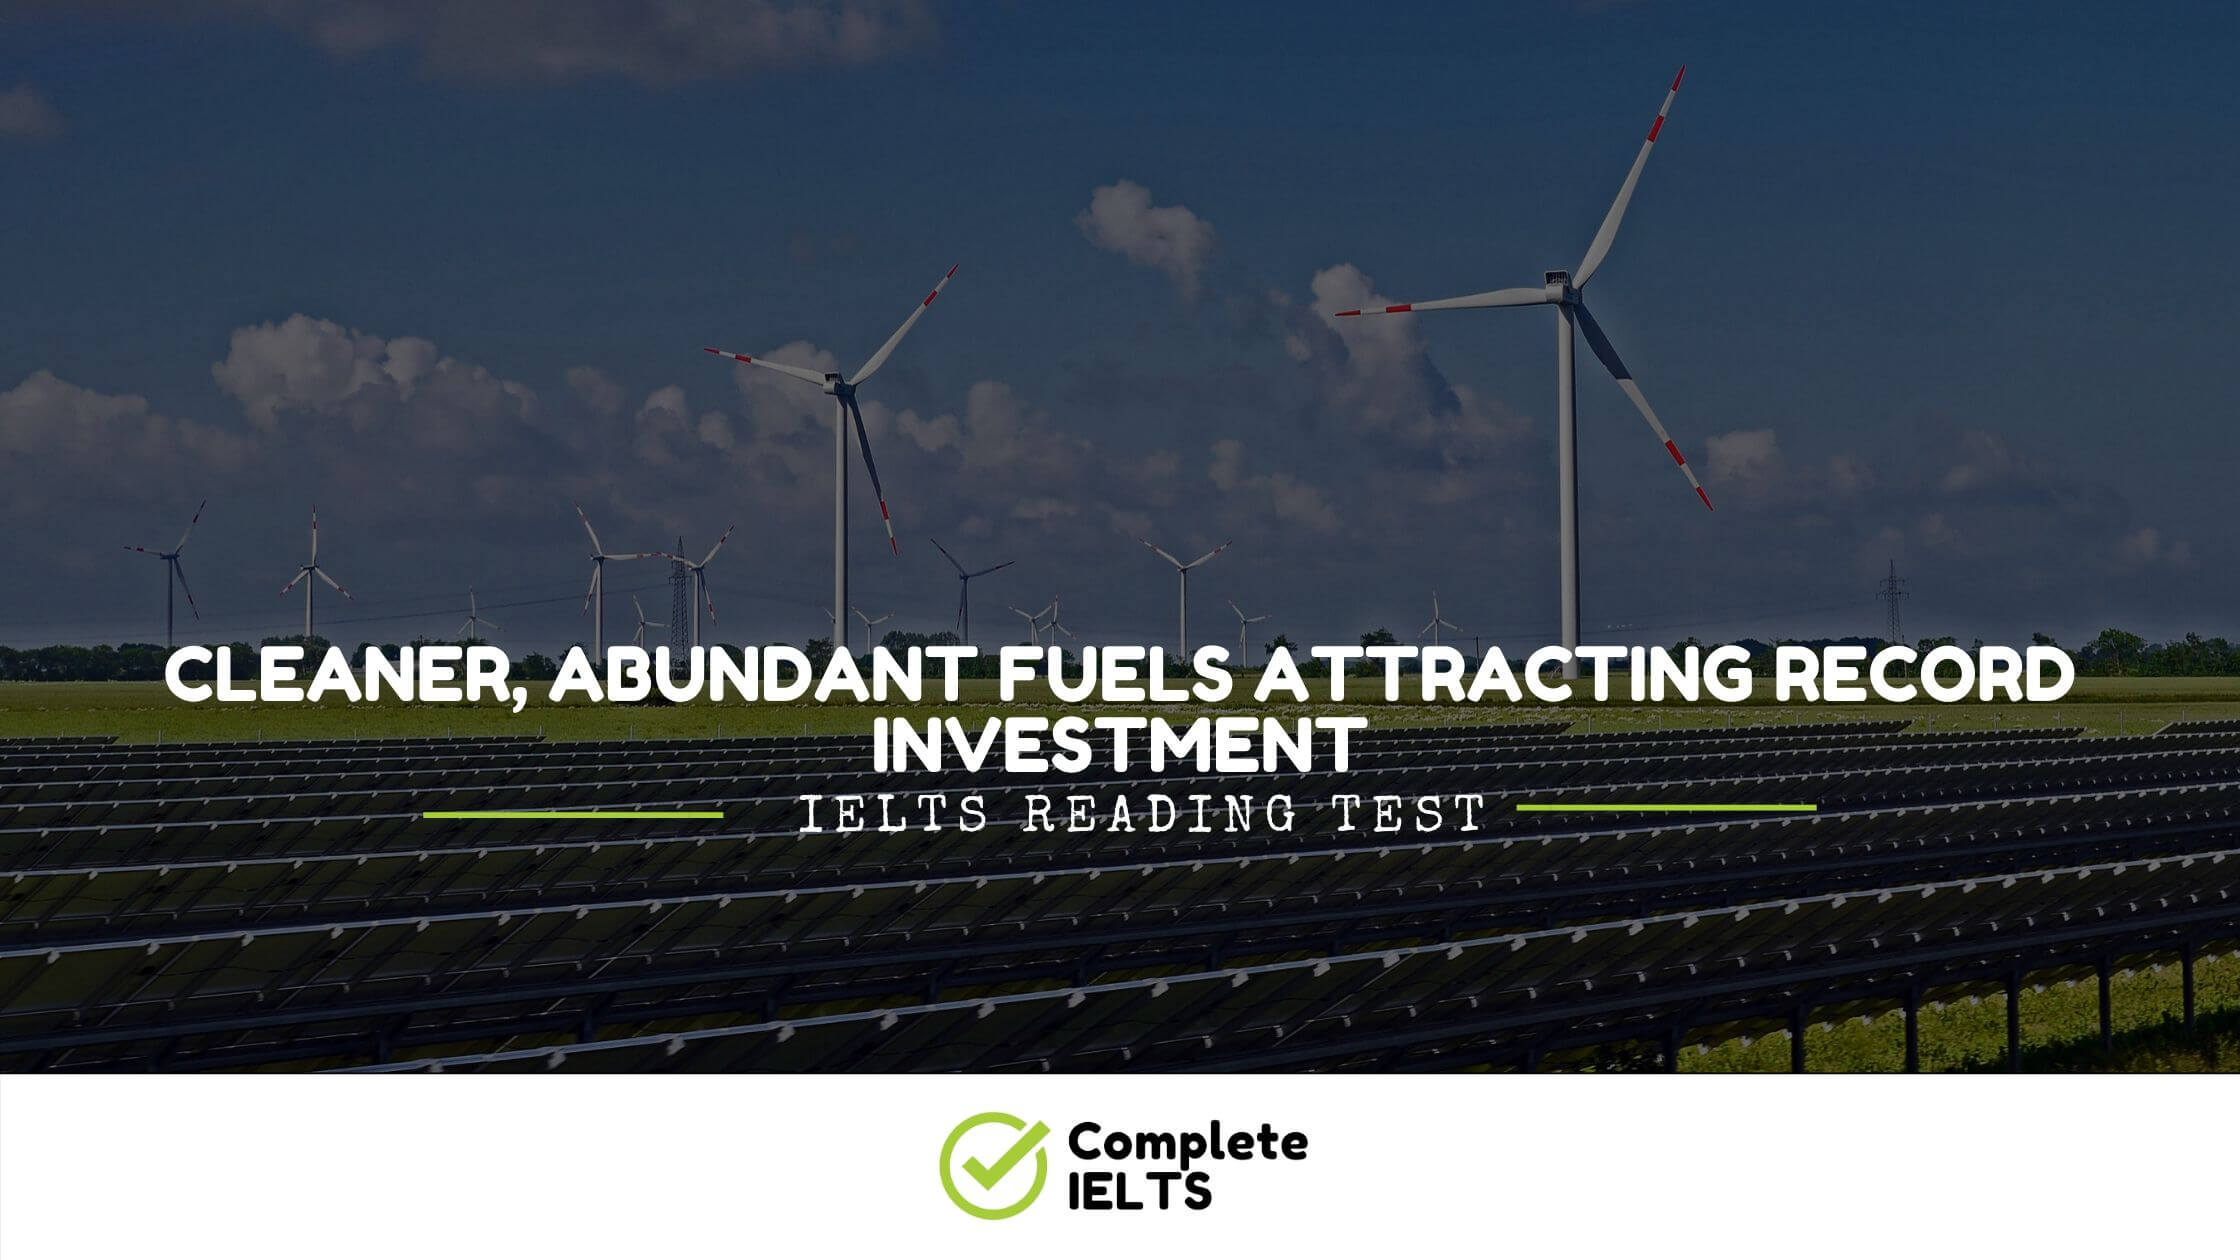 Cleaner, Abundant Fuels Attracting Record Investment